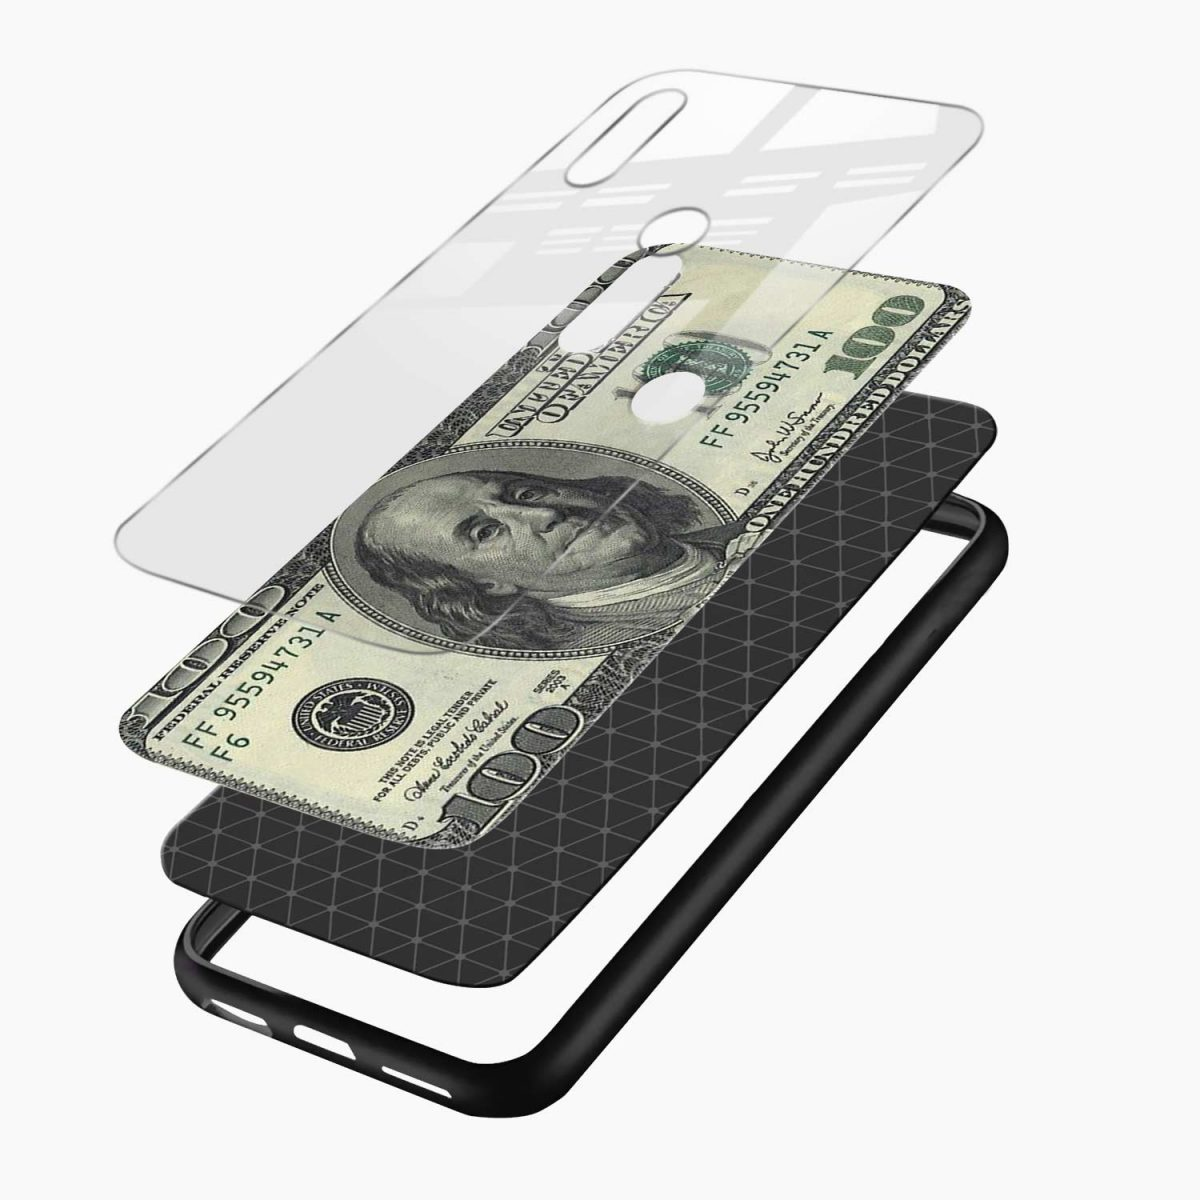 dollar redmi note 5 pro back cover layers view